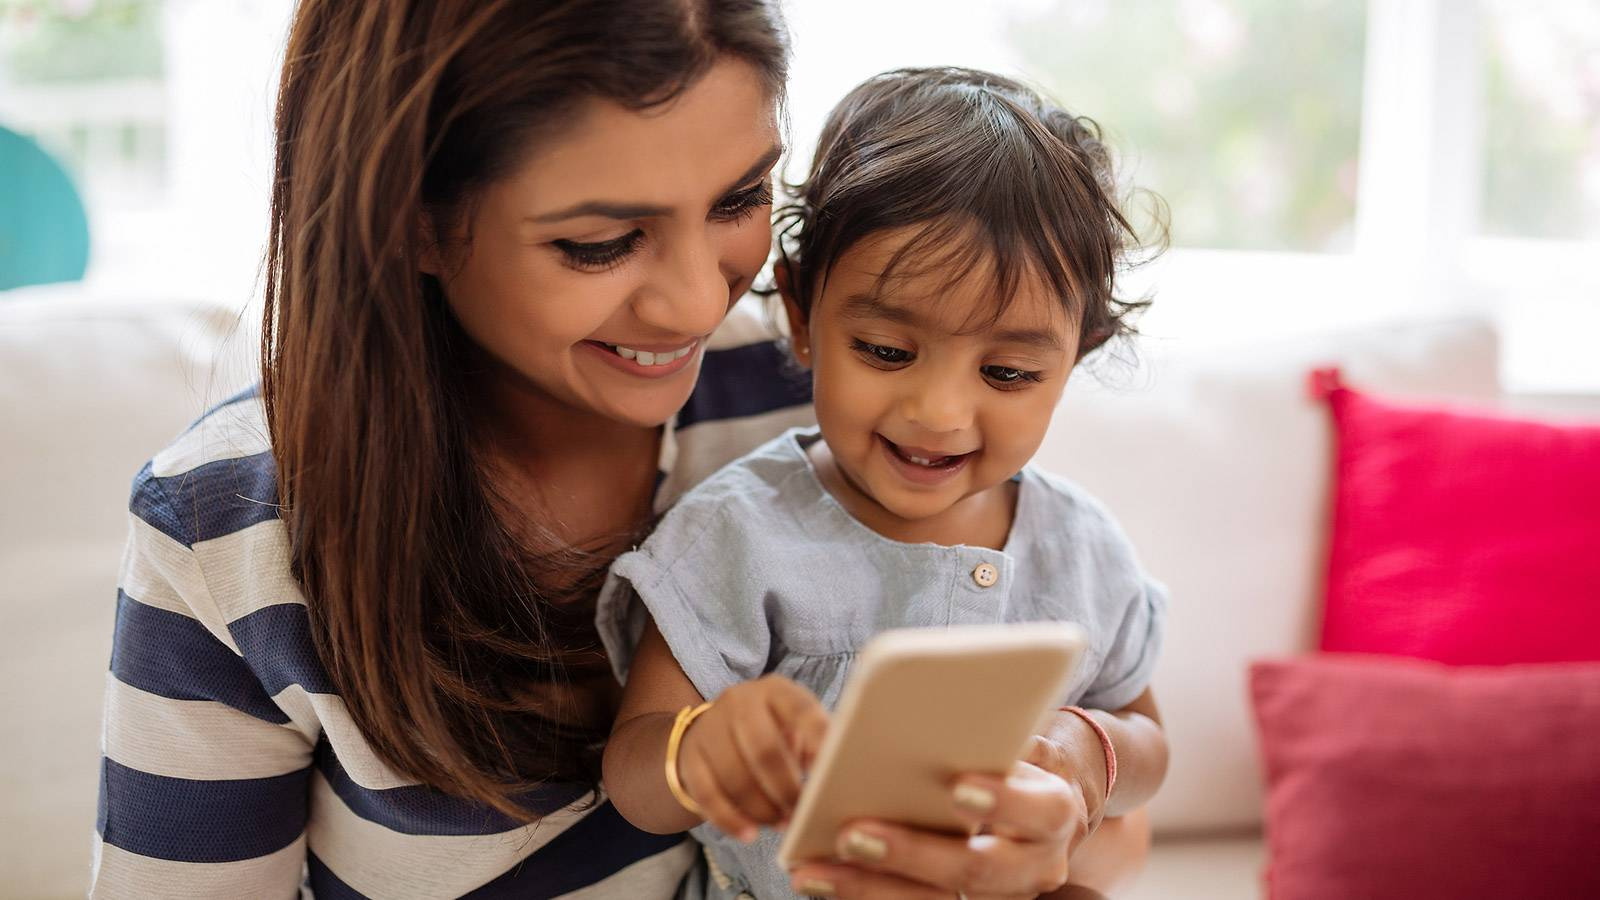 Parents-10-brilliant-ways-technology-makes-parenting-easier